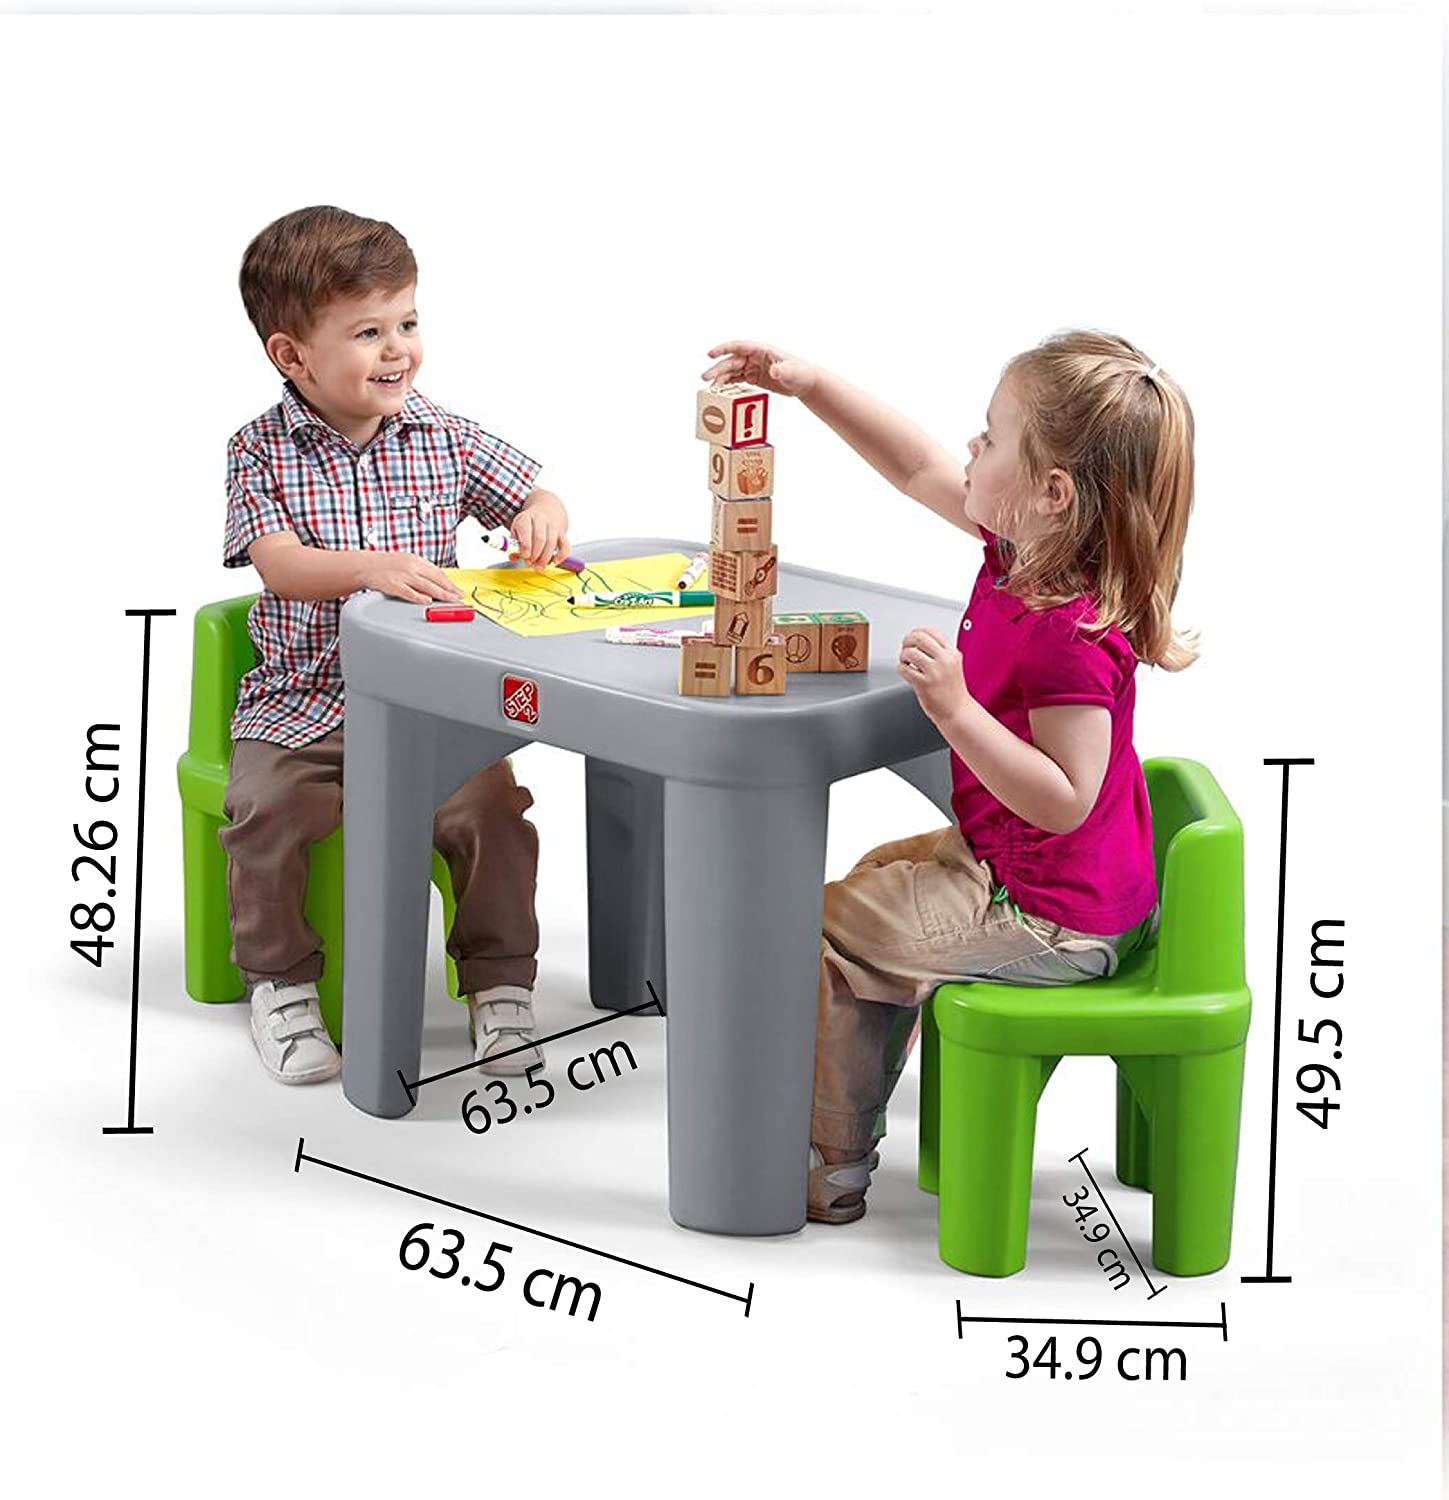 Step9 9 Mighty My Size Table & Chairs Set, Grey, Green ...